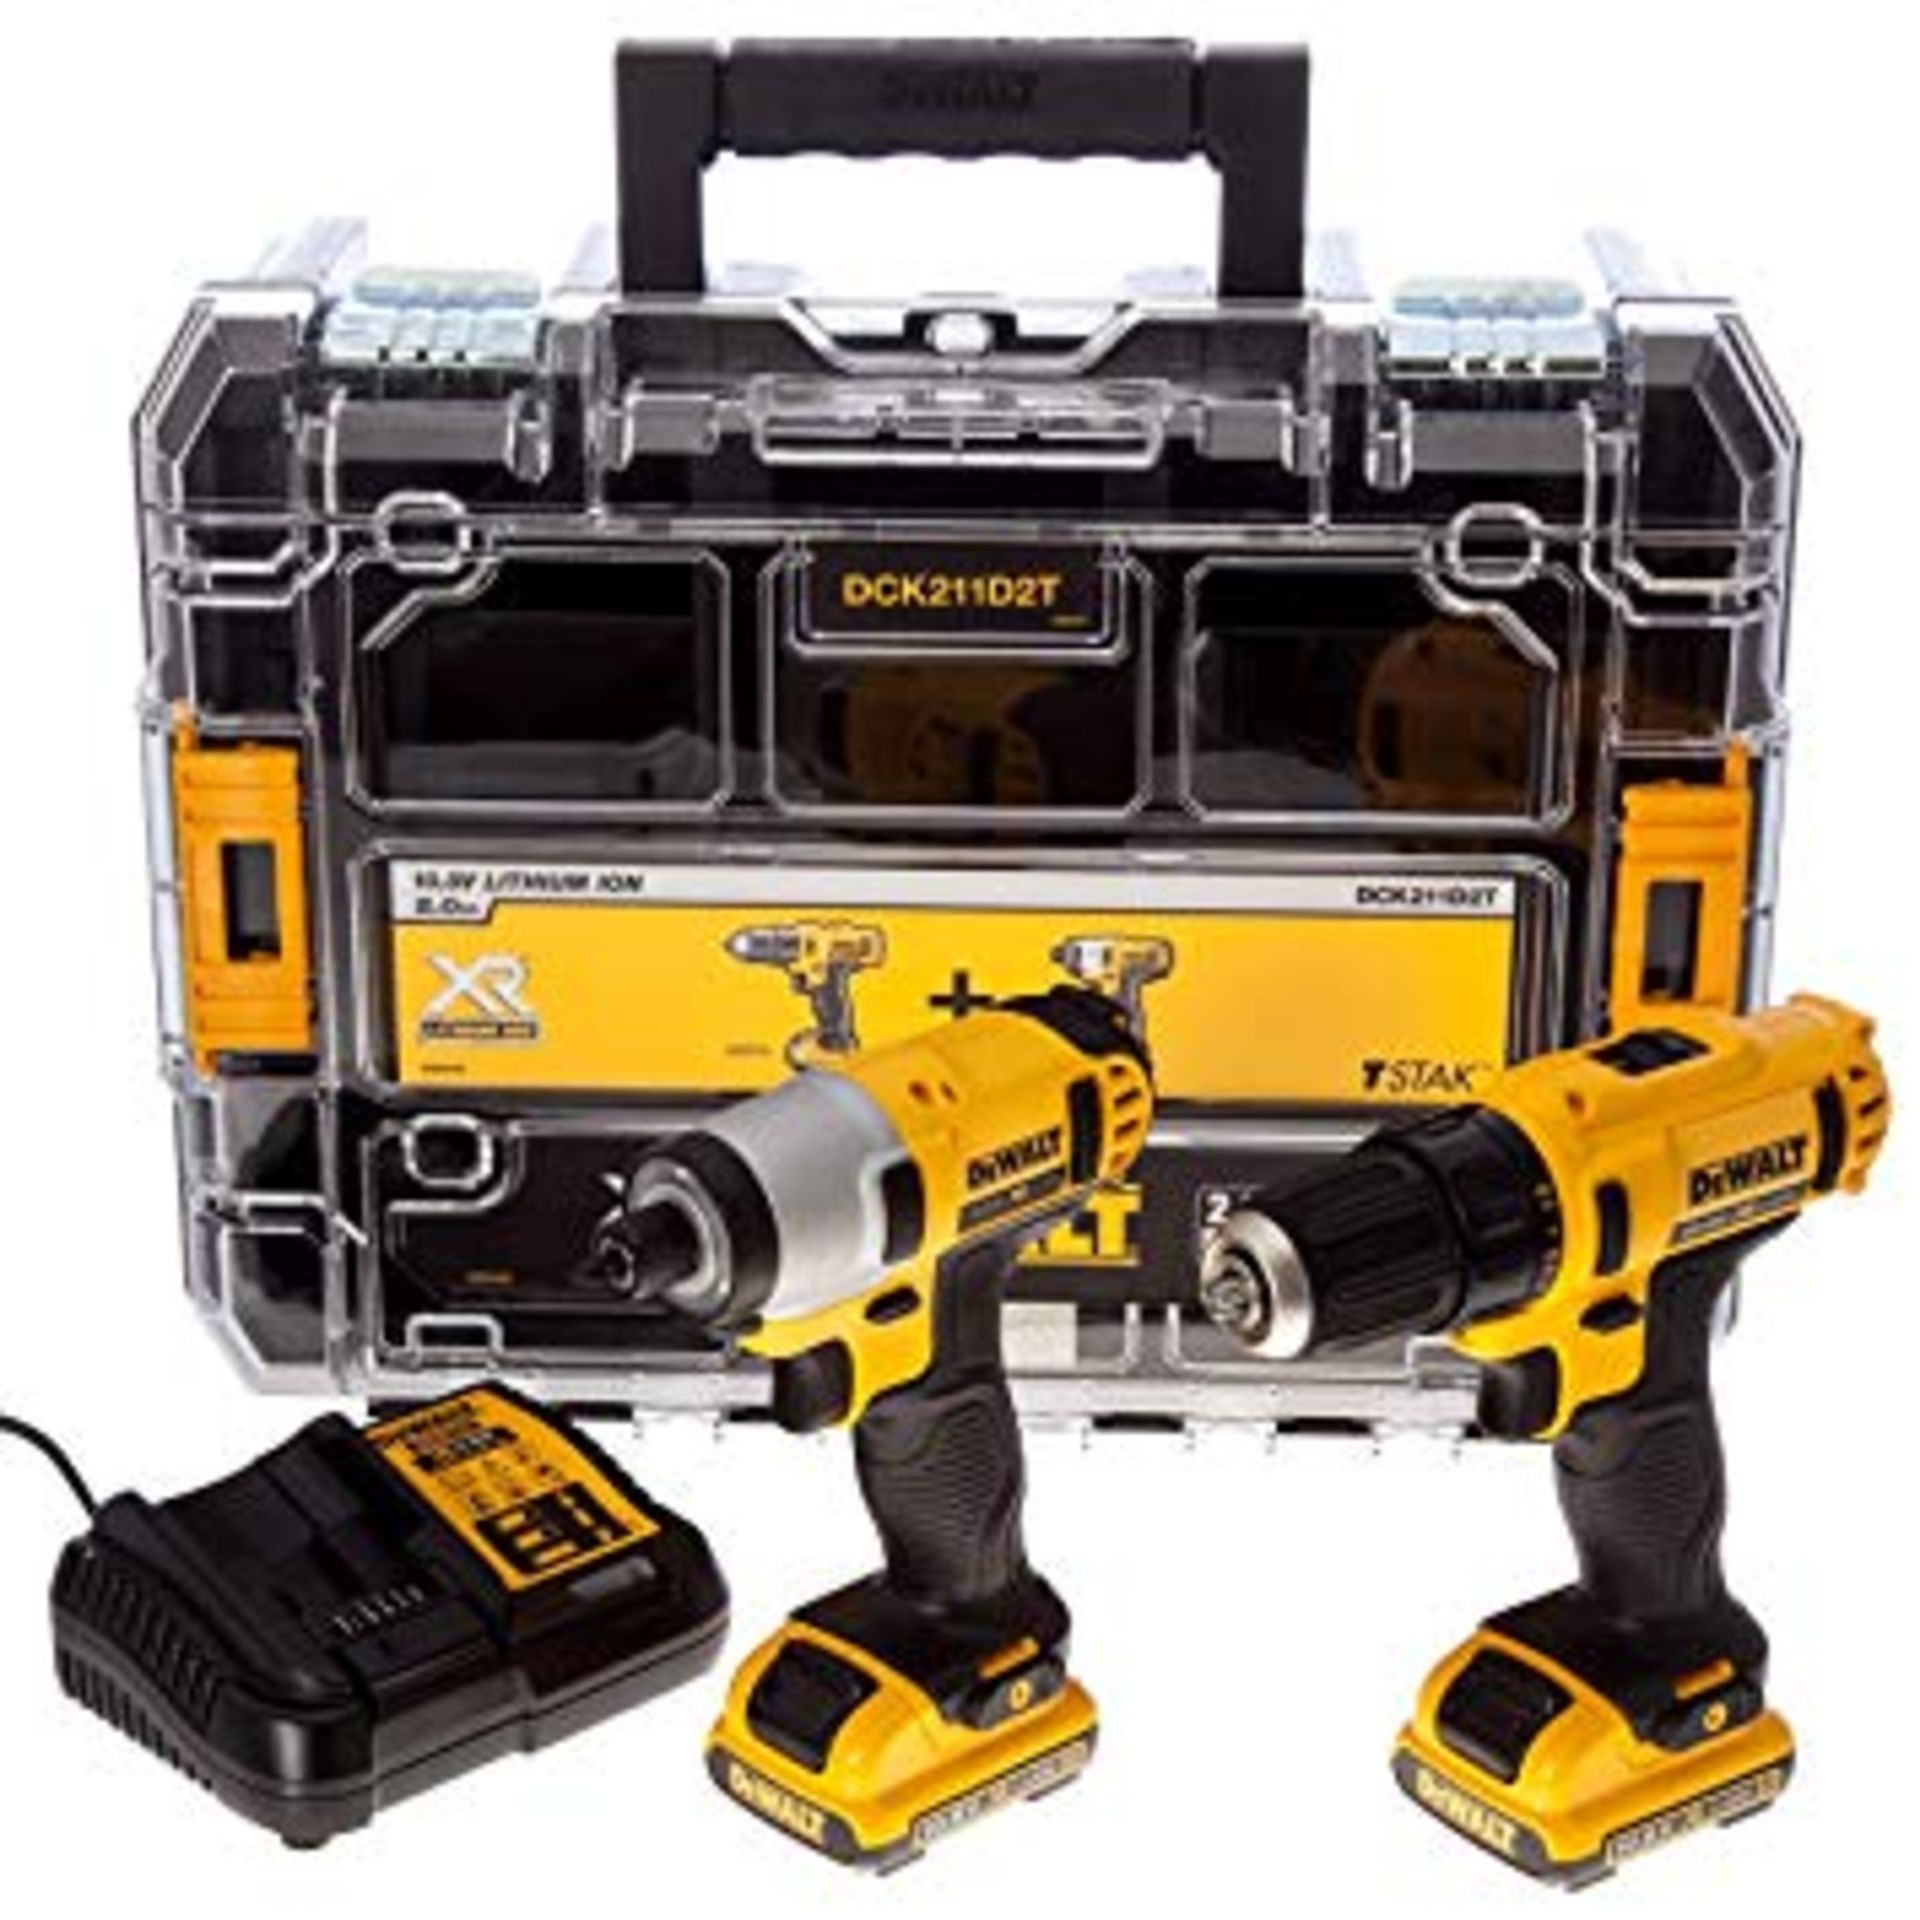 Lot 11556 - V Brand New DeWalt 10.8v Twin Drill & Impact Driver Kit + Two Batteries + Charger